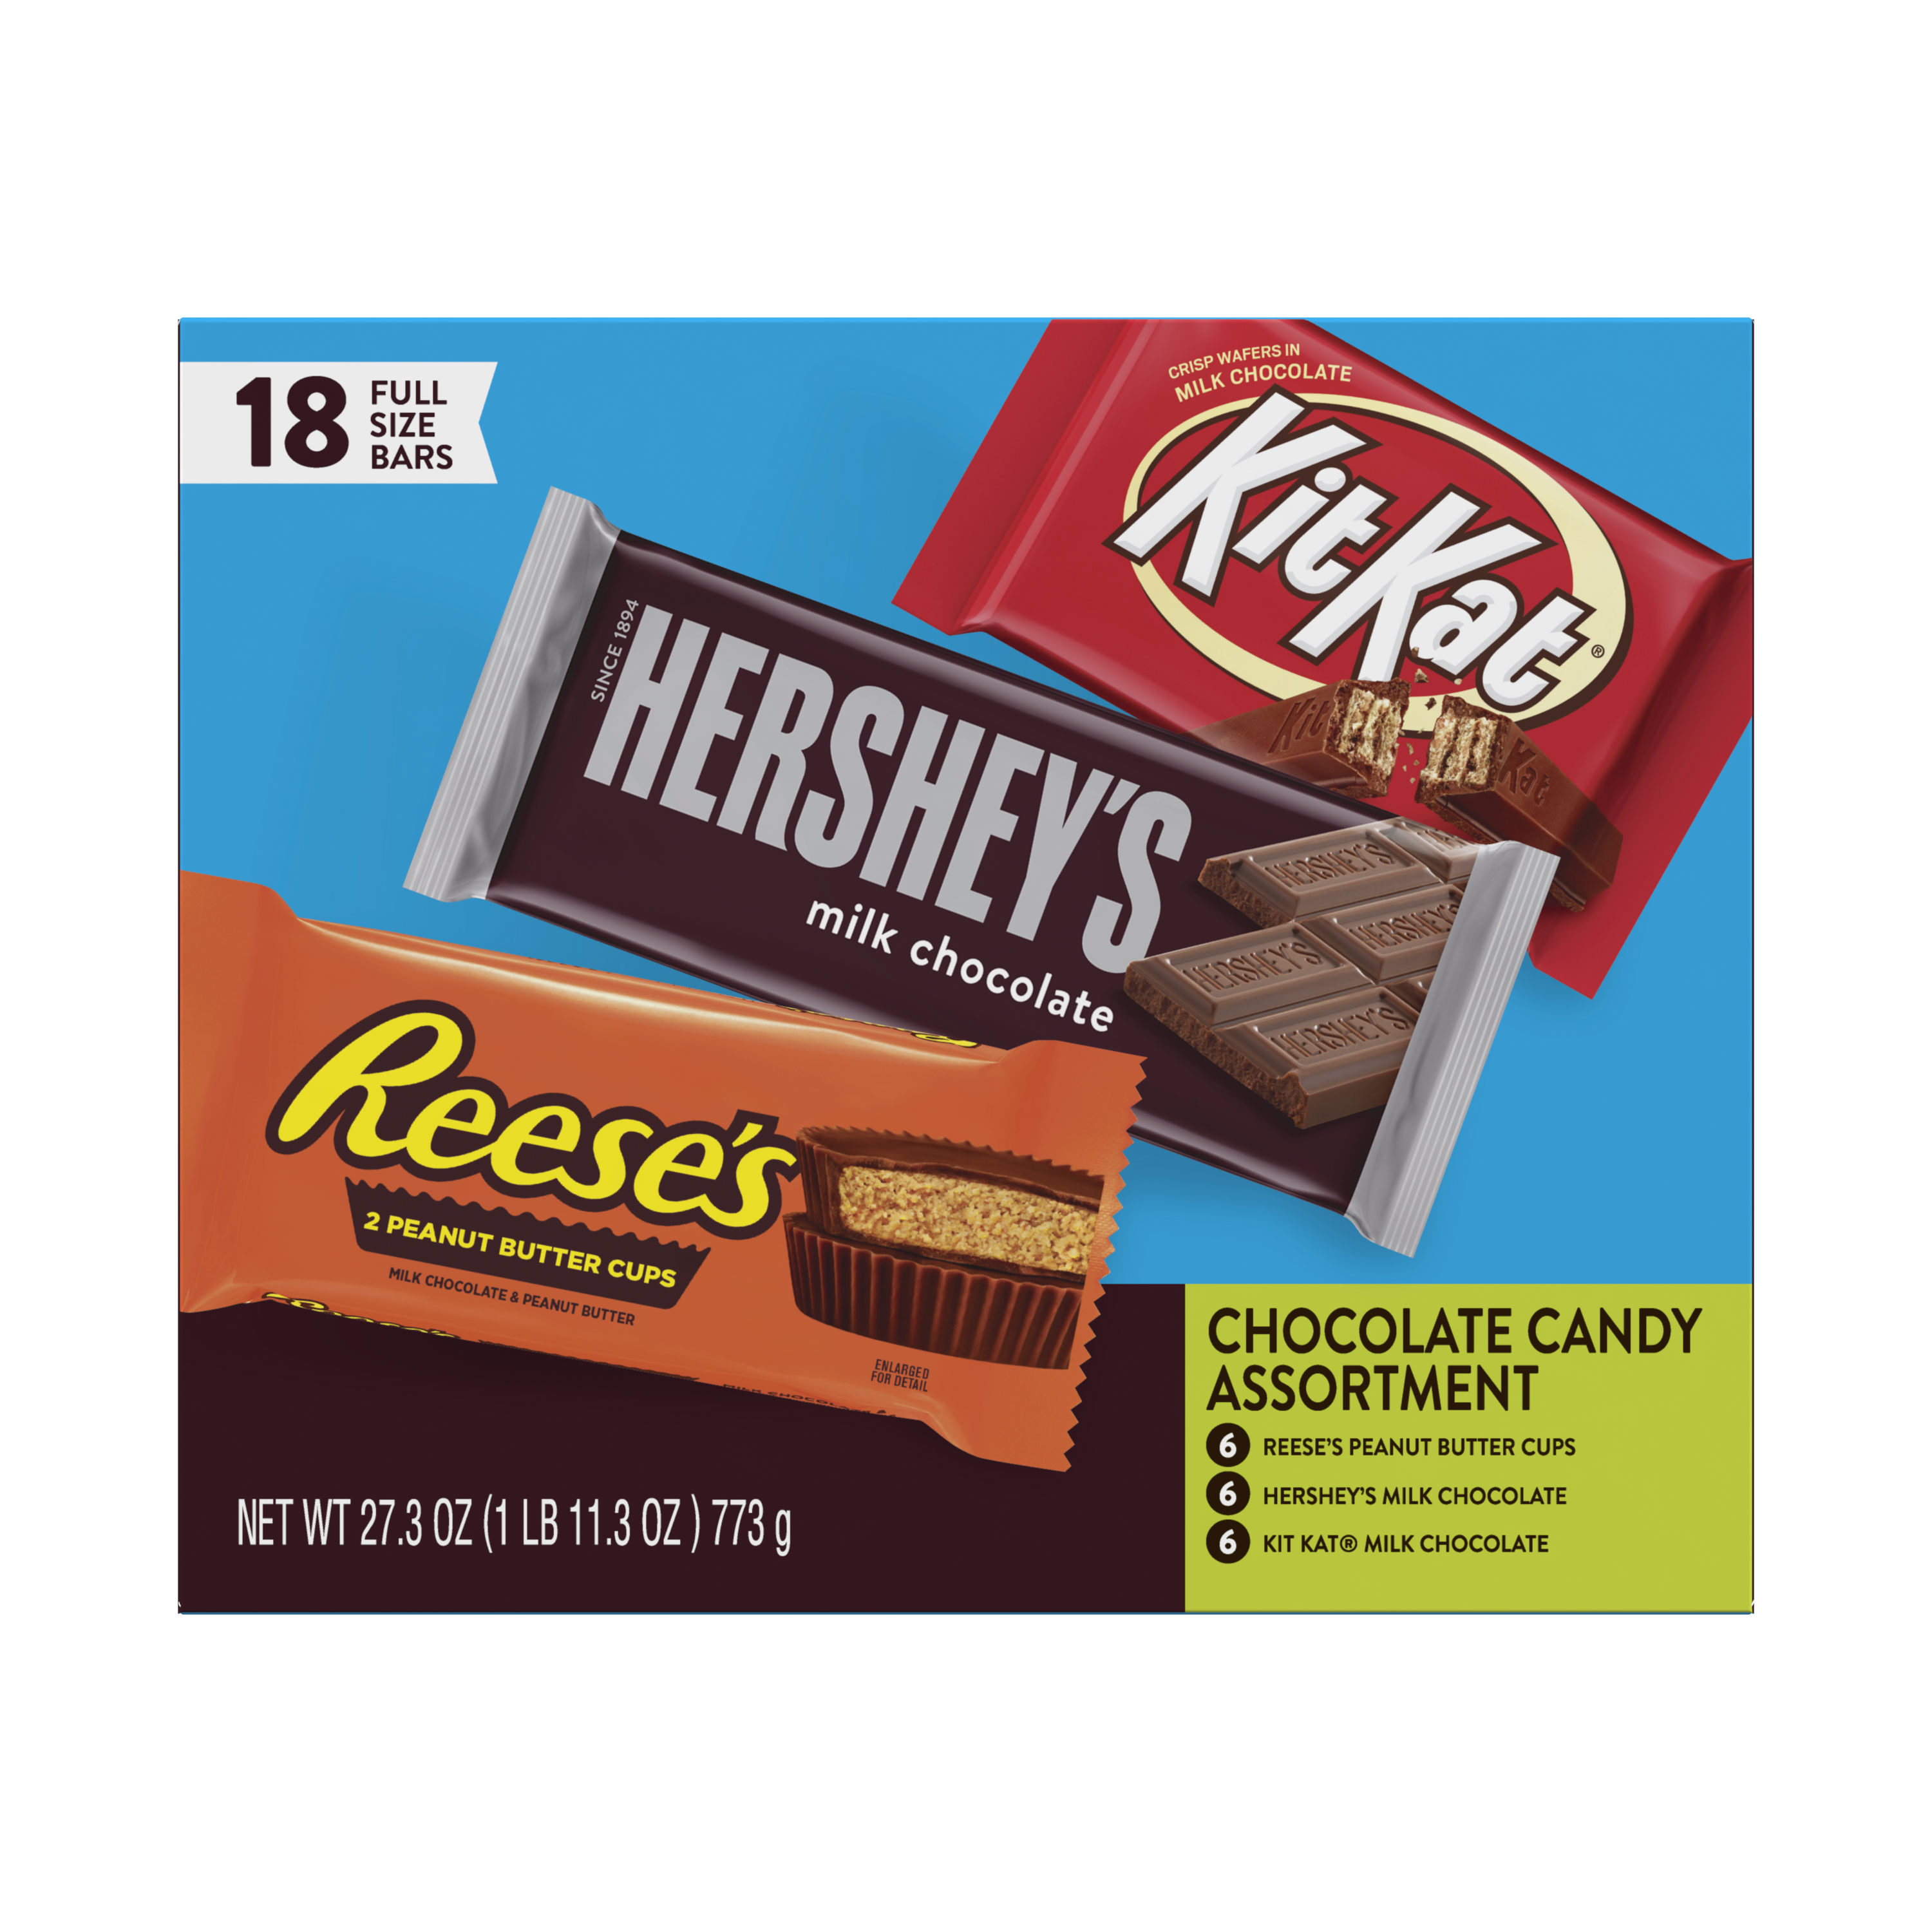 Hershey Variety Pack Chocolate Candy Bar Assortment, 27.3 oz box, 18 bars - Front of Package